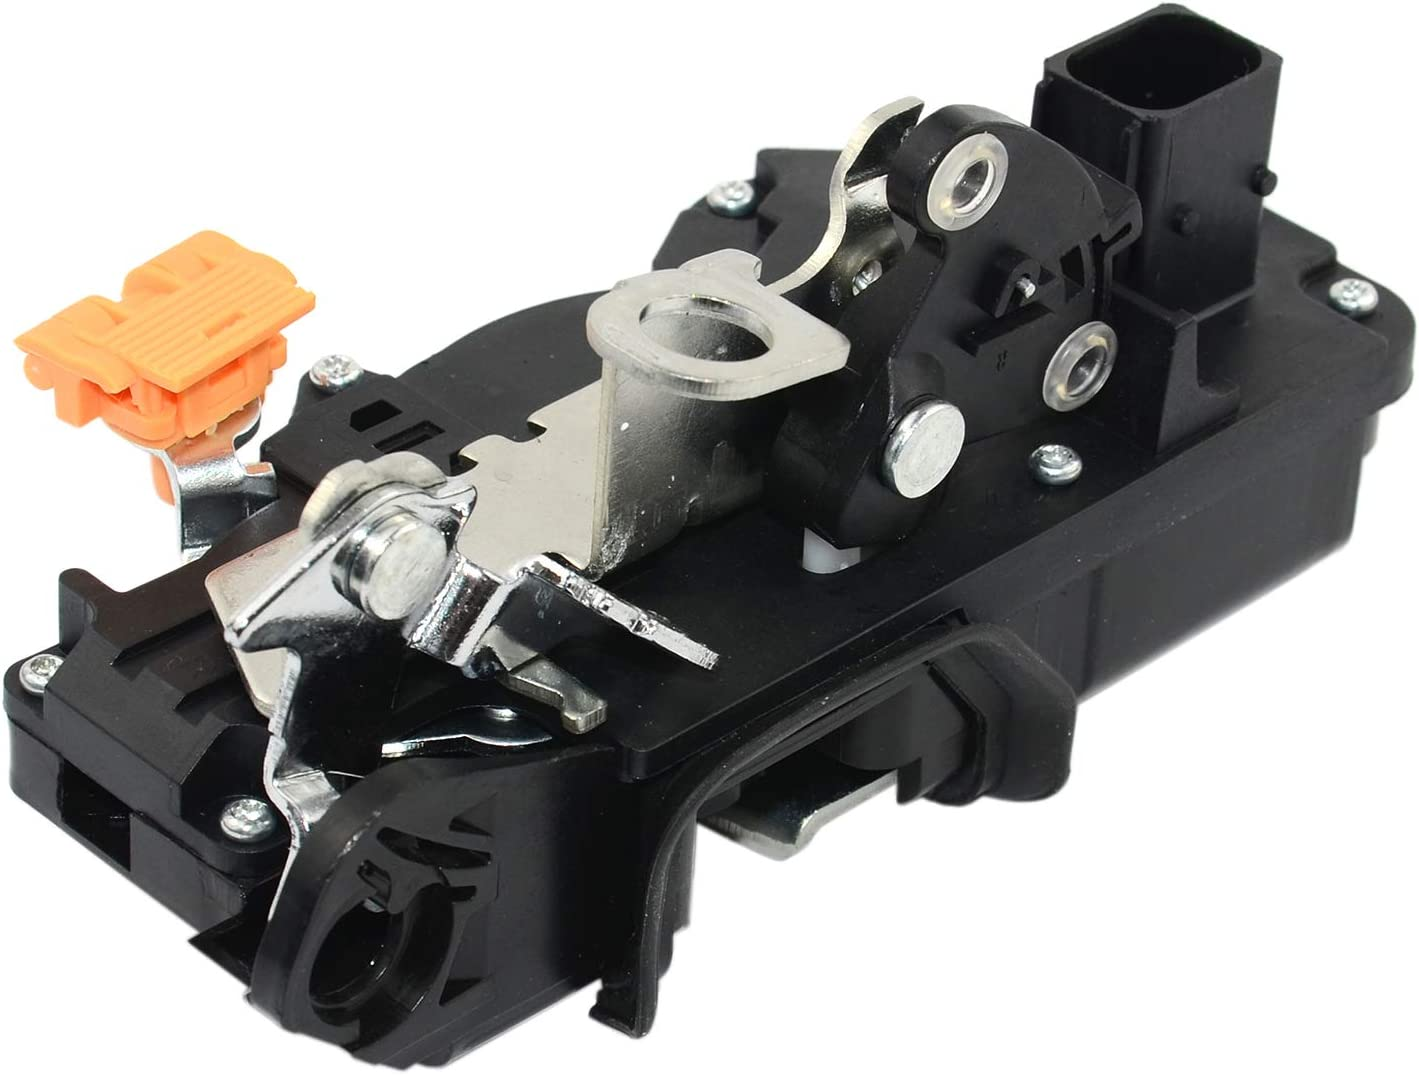 Door lock actuator For Chevrolet Impala 2006-2011 Rear Right 931-333 20790500